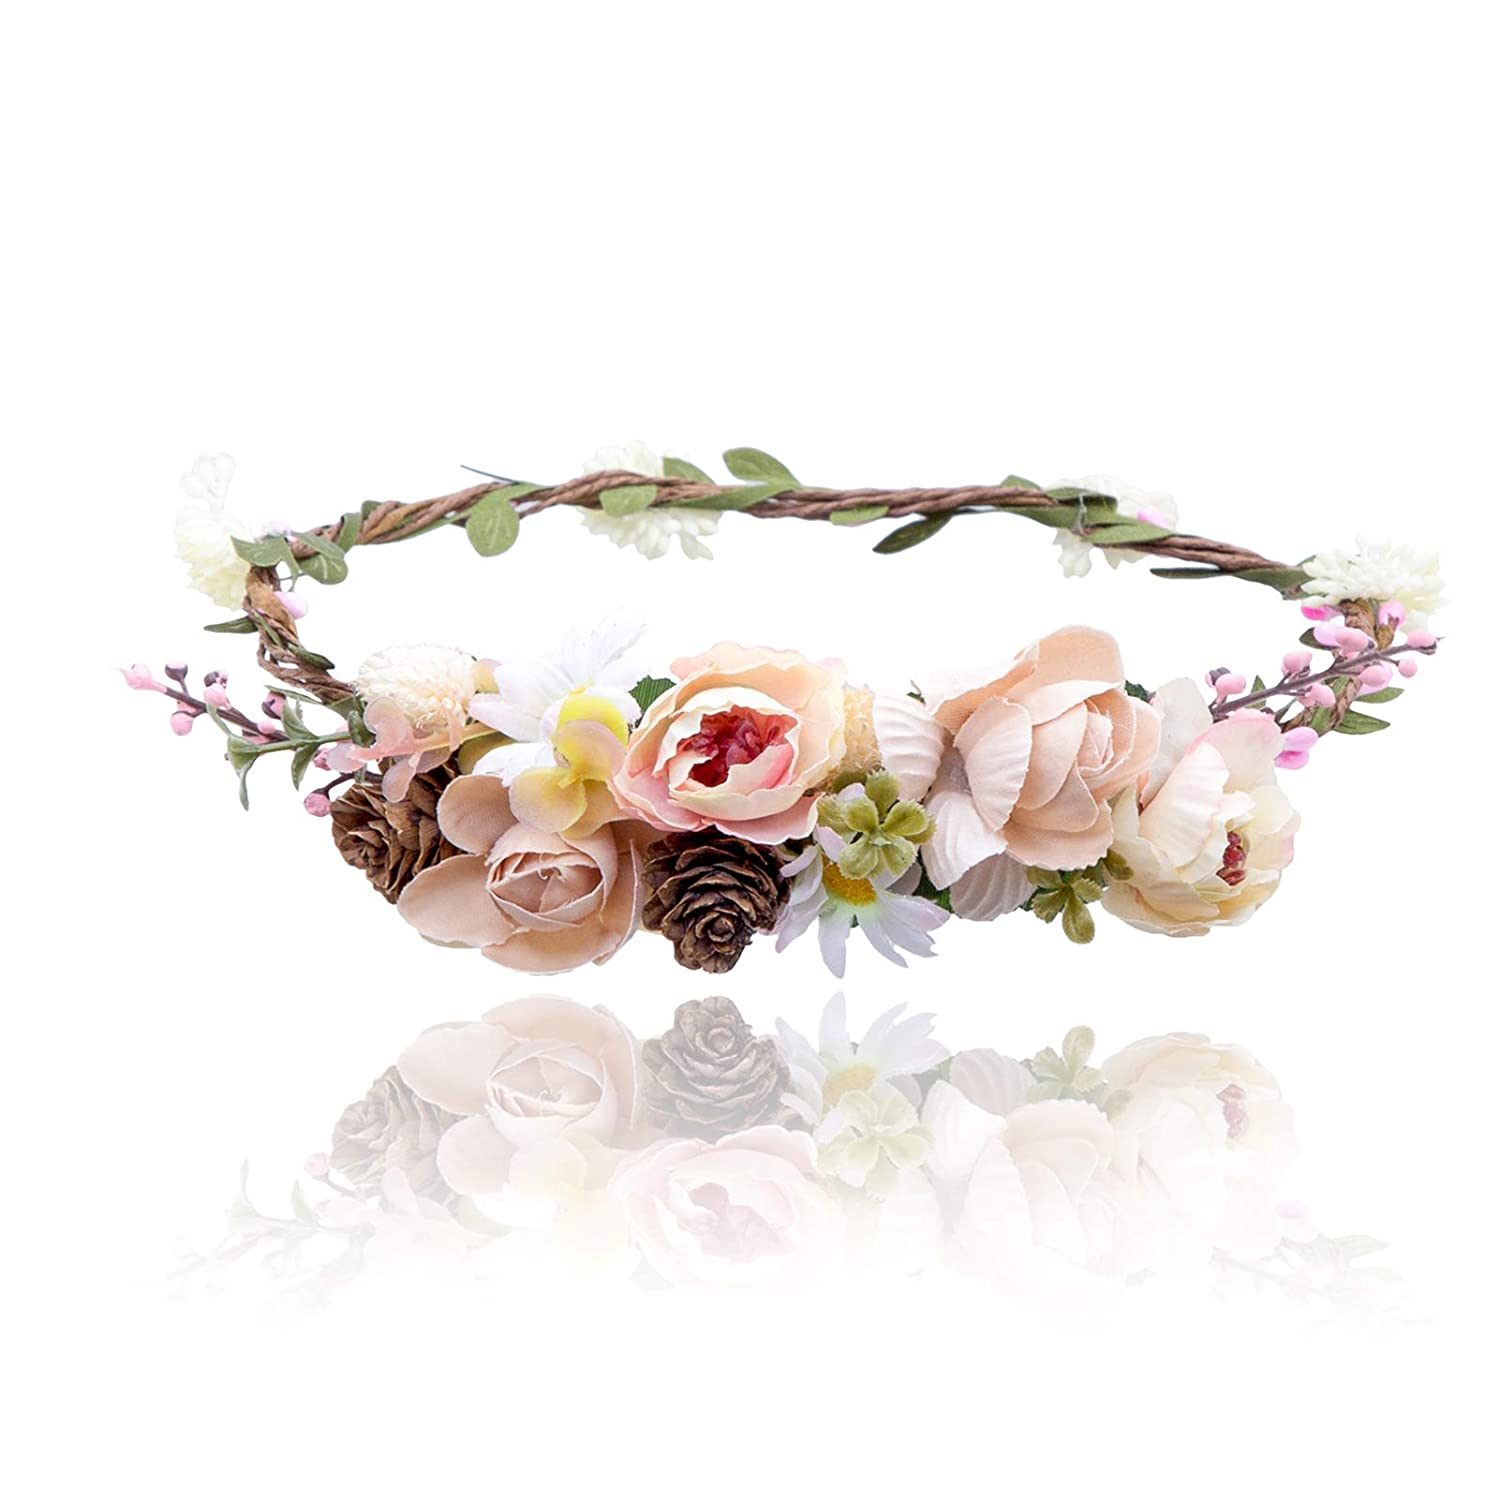 Handmade Floral Headdress Small Lilac Purple Roses With Leaves